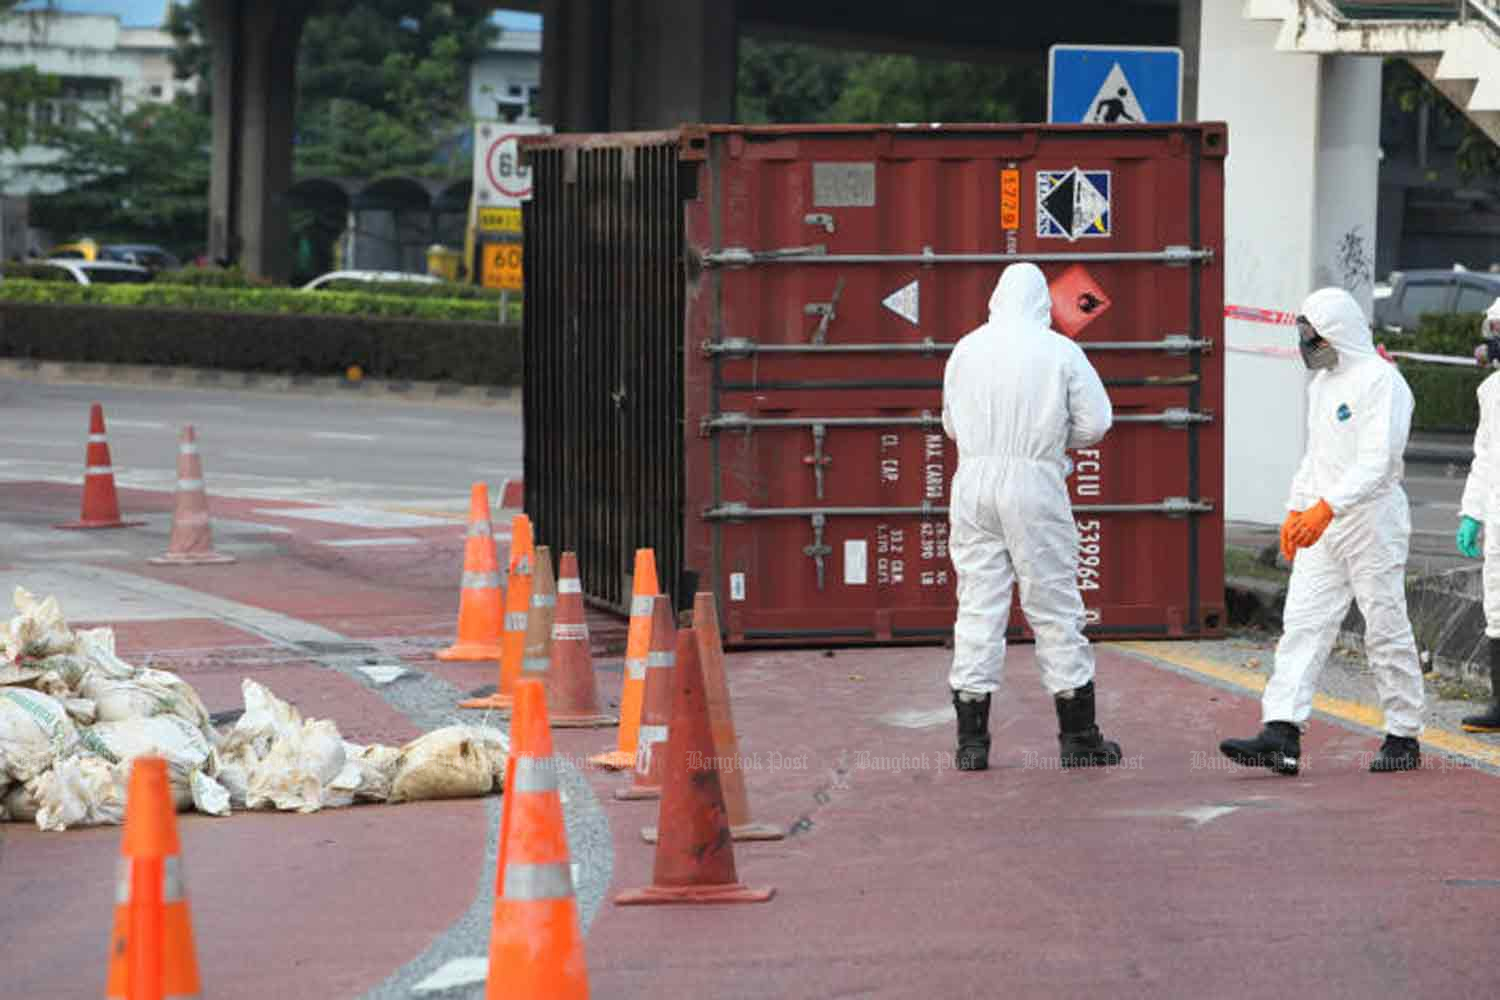 Hazmat officials handle a cargo container containing chemicals that fell from a truck near Suk Sawat Road in Bangkok last year. (File photo by Pawat Laopaisarntaksin)